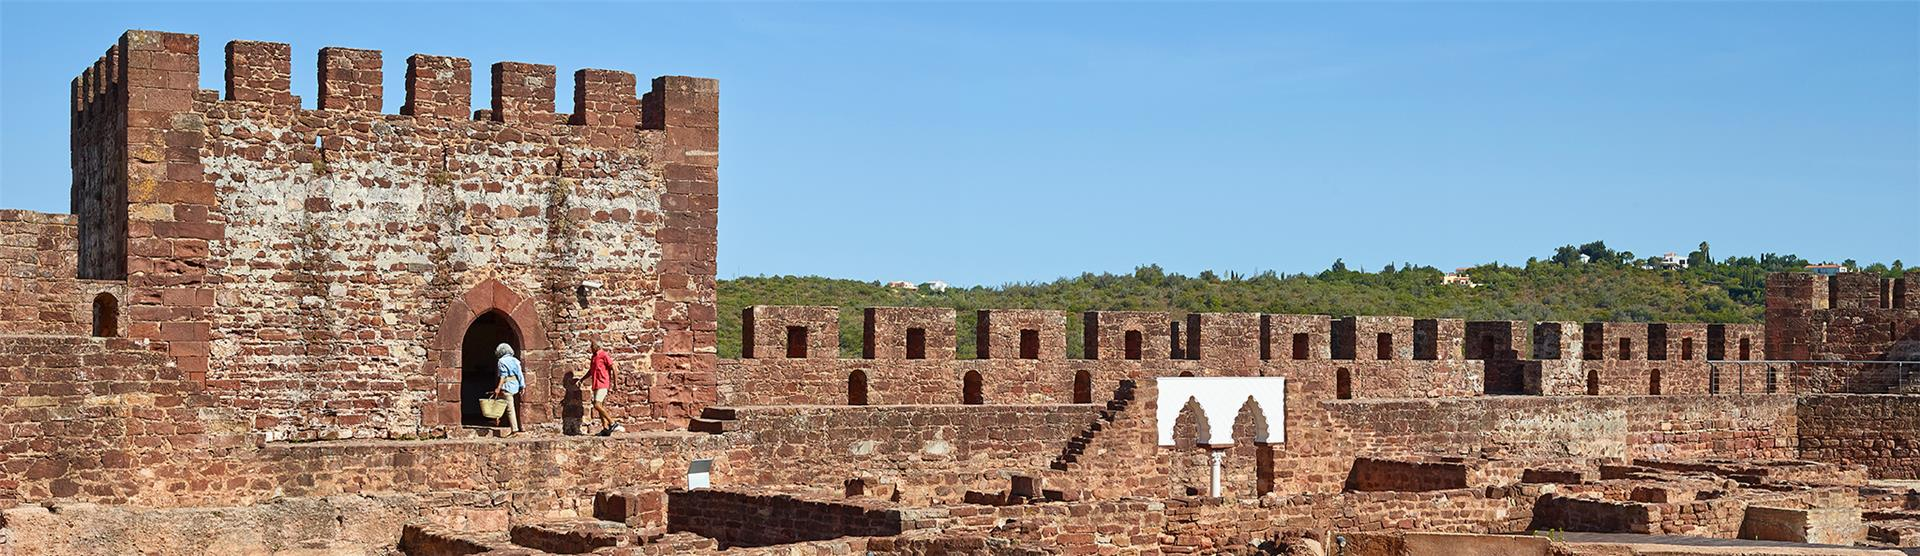 Algarve Castles and Fortresses